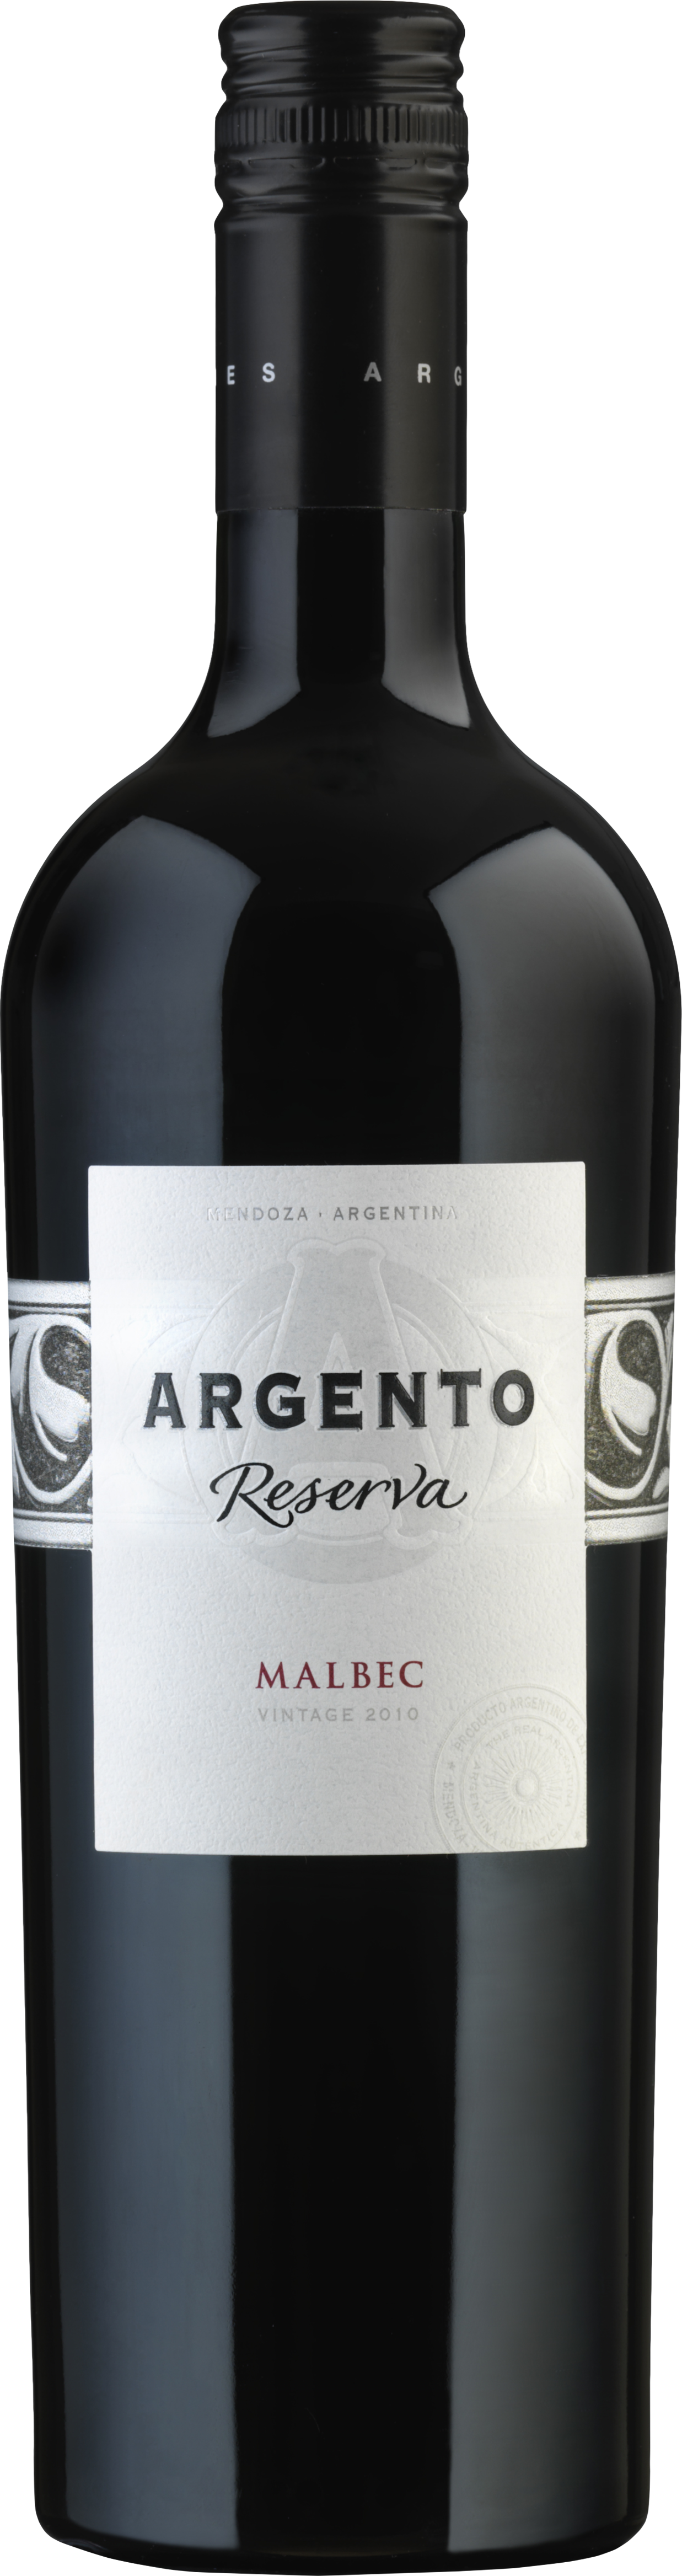 Argento Wine Bottle